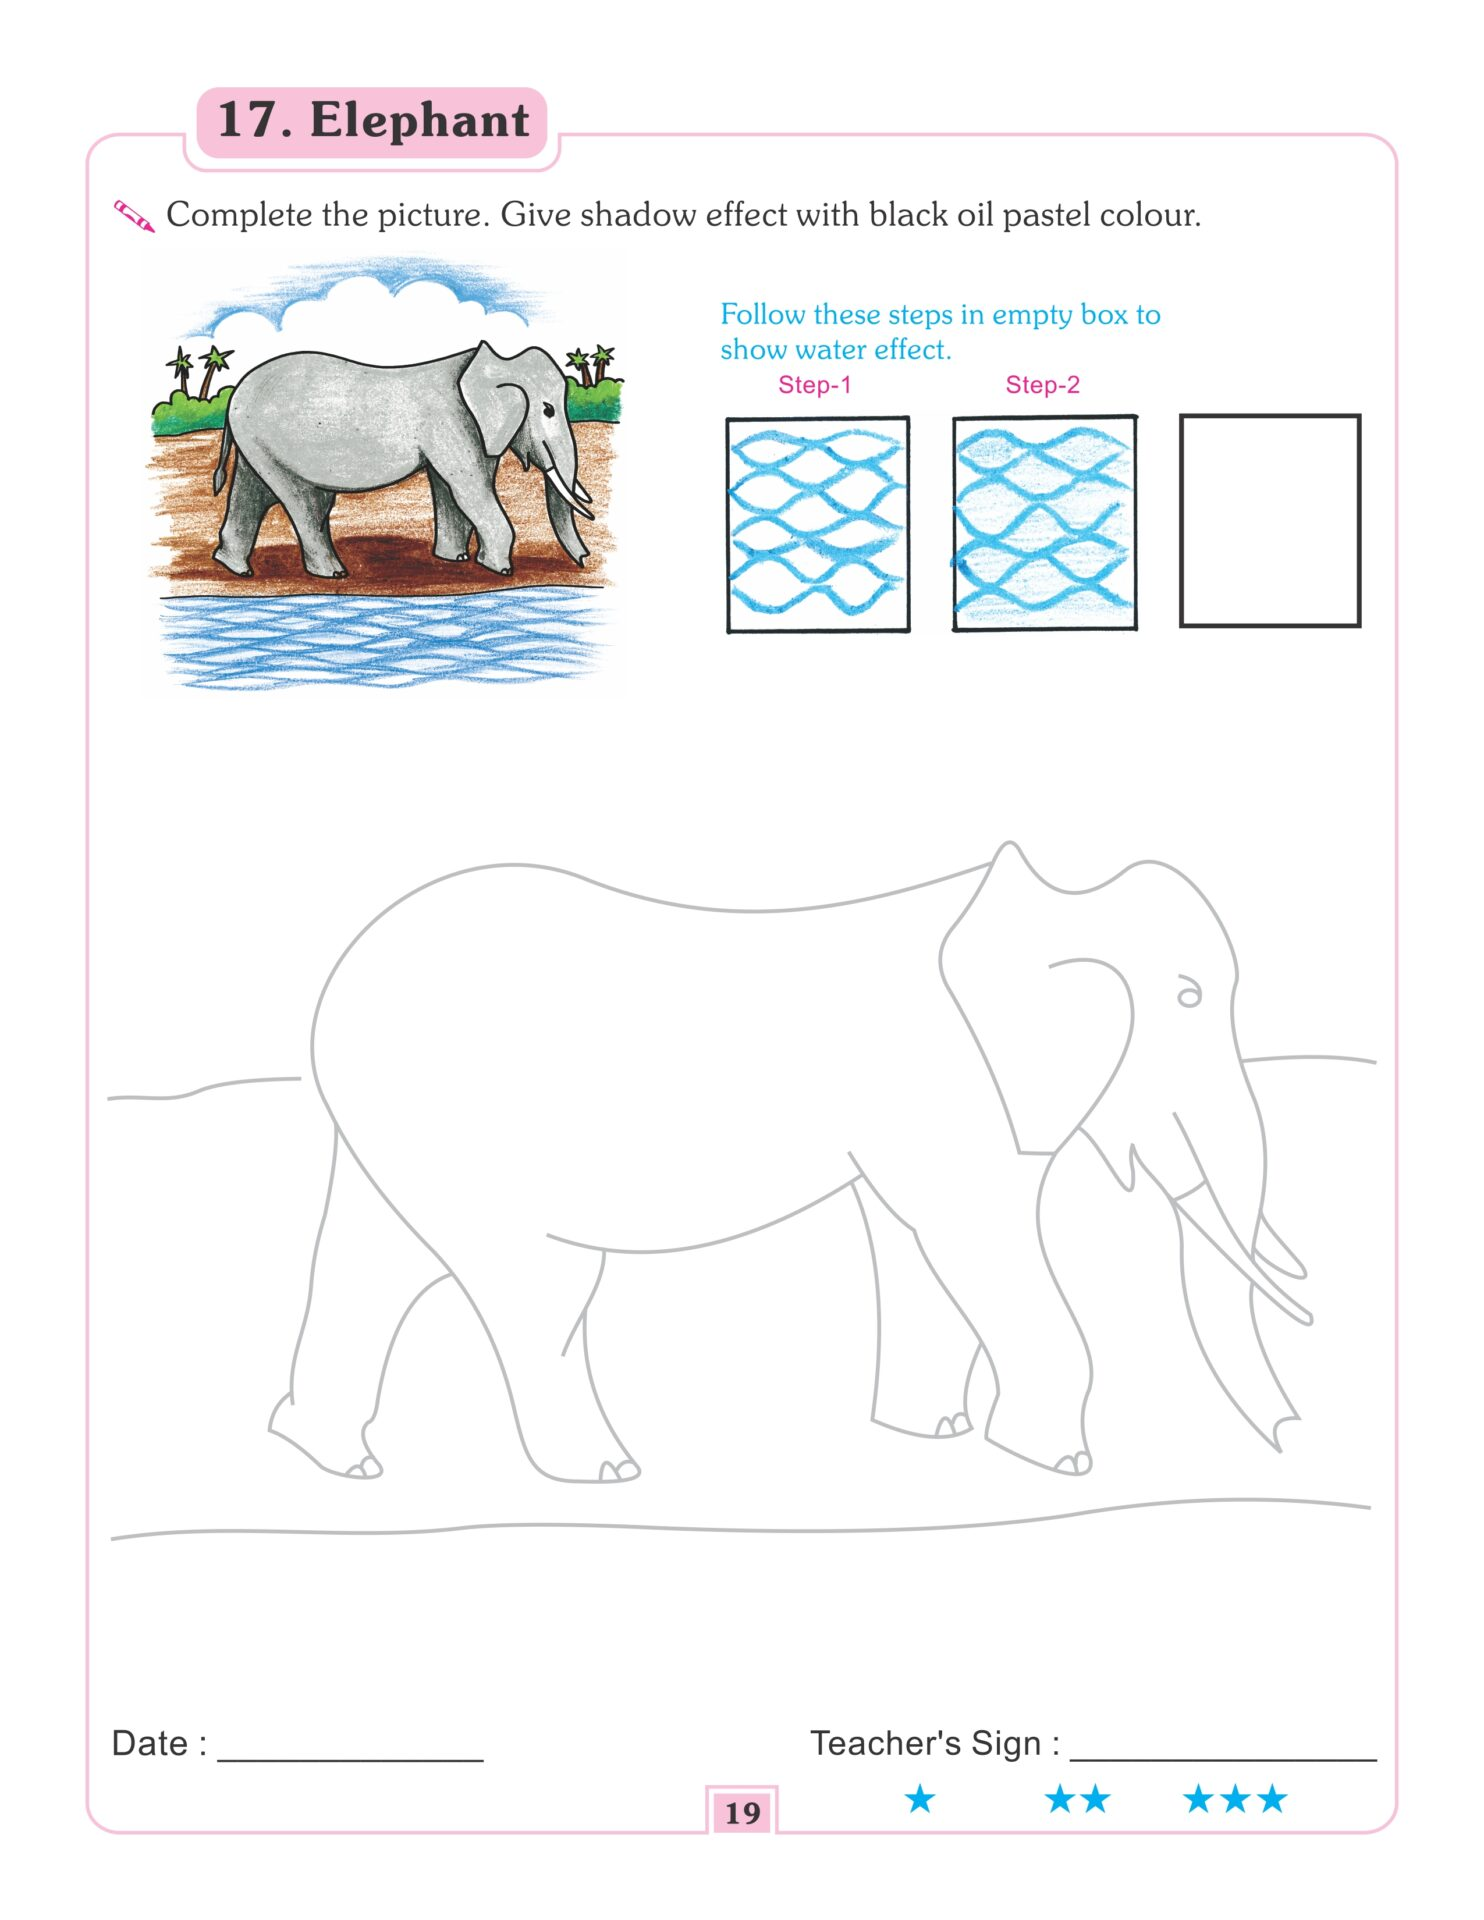 Nigam Drawing and Colouring Book 3 7